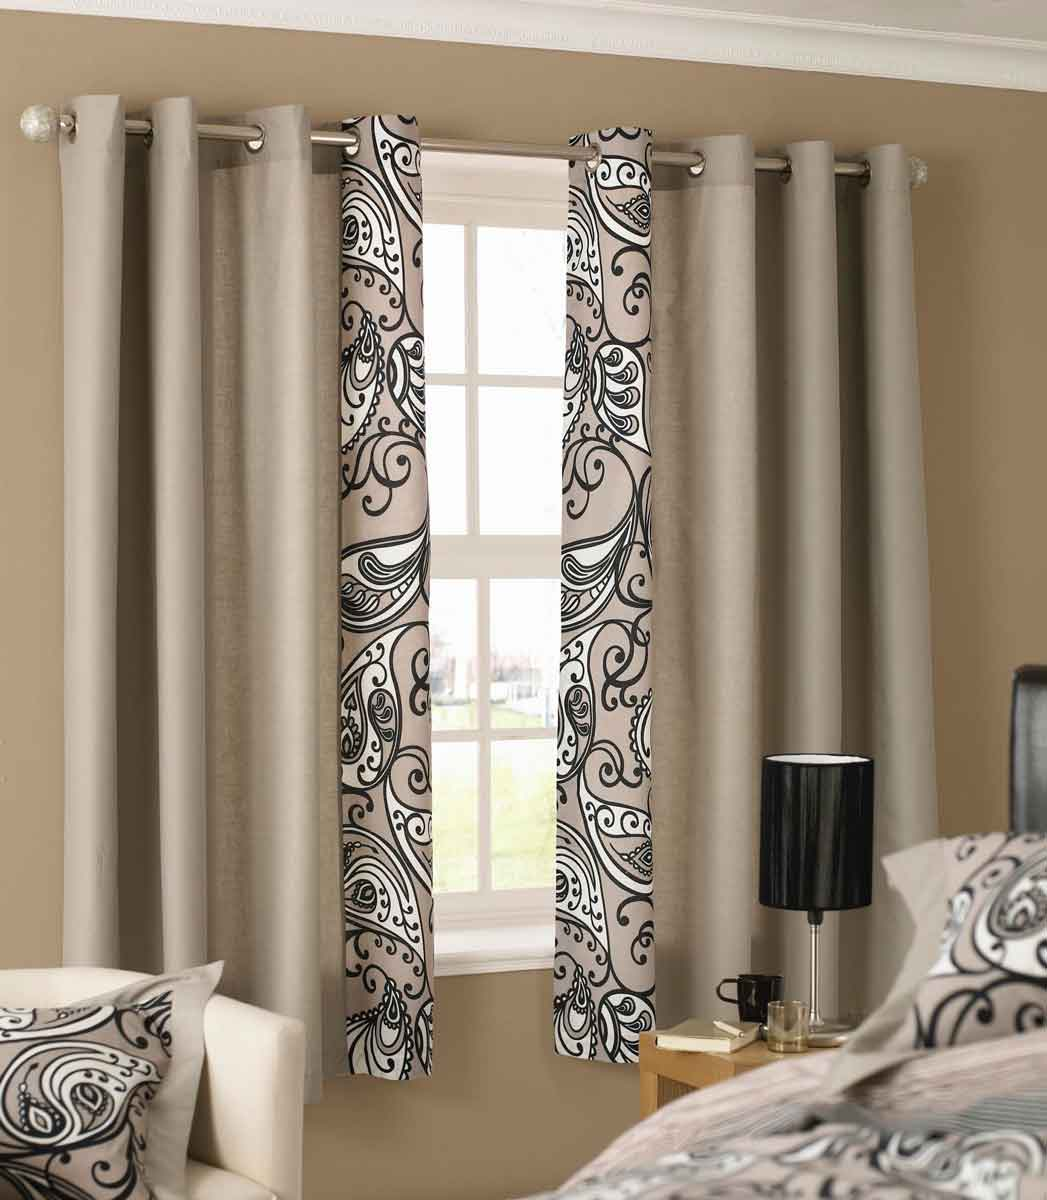 Bedroom Curtain Idea 1047 x 1200